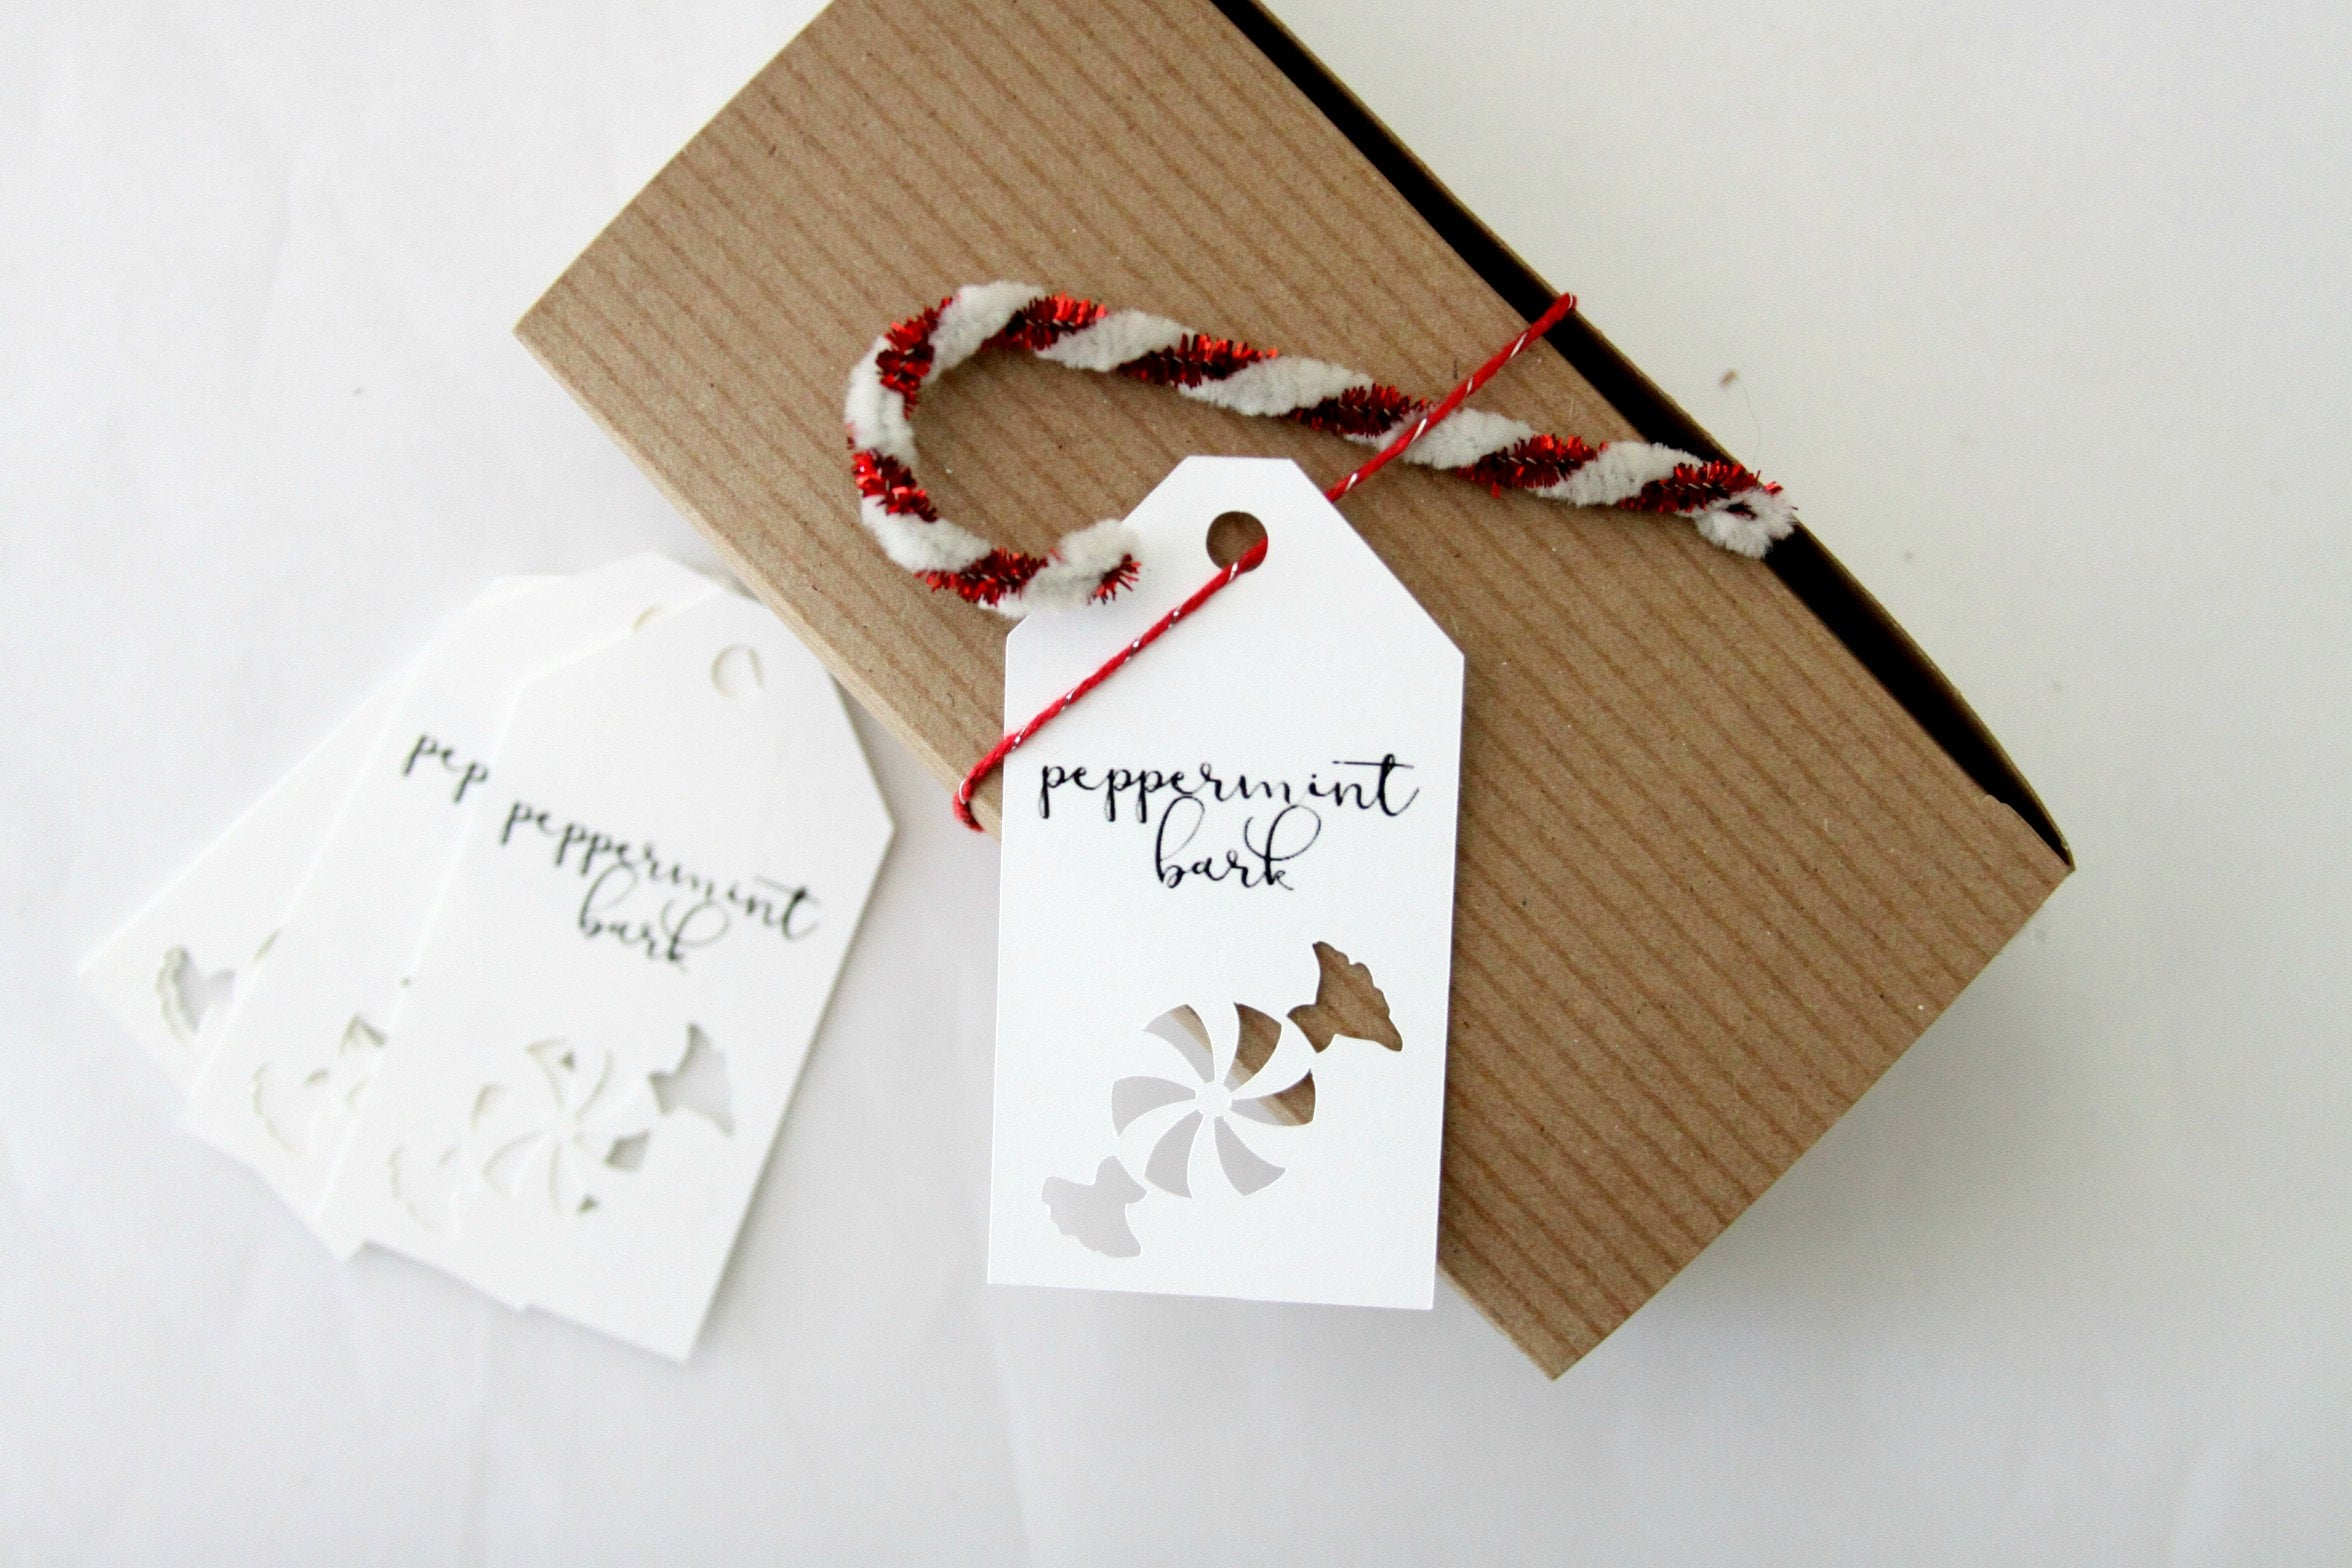 Peppermint Bark Tag Winter Wedding Favor Ideas Homemade Christmas